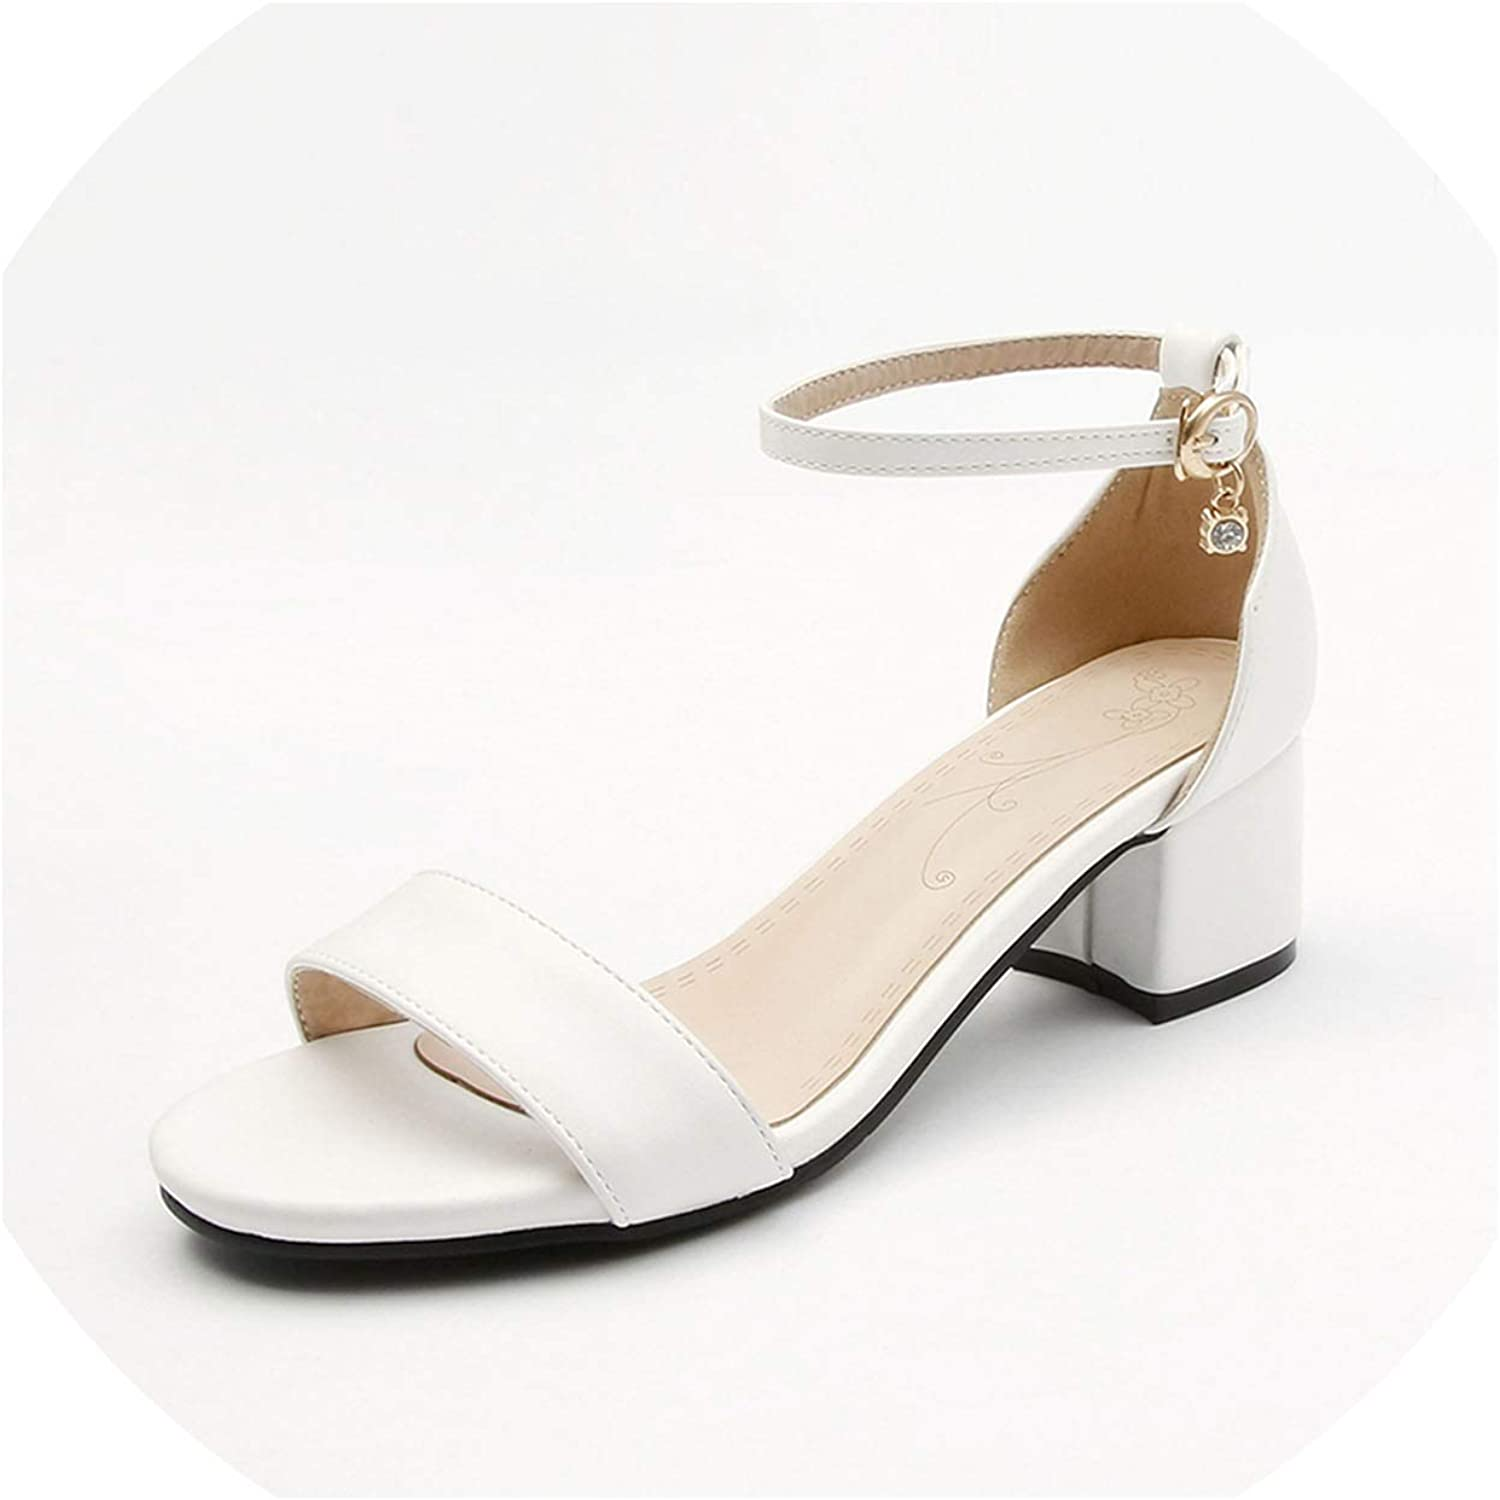 Square High Heels Women shoes Summer Sandals Buckle Woman shoes